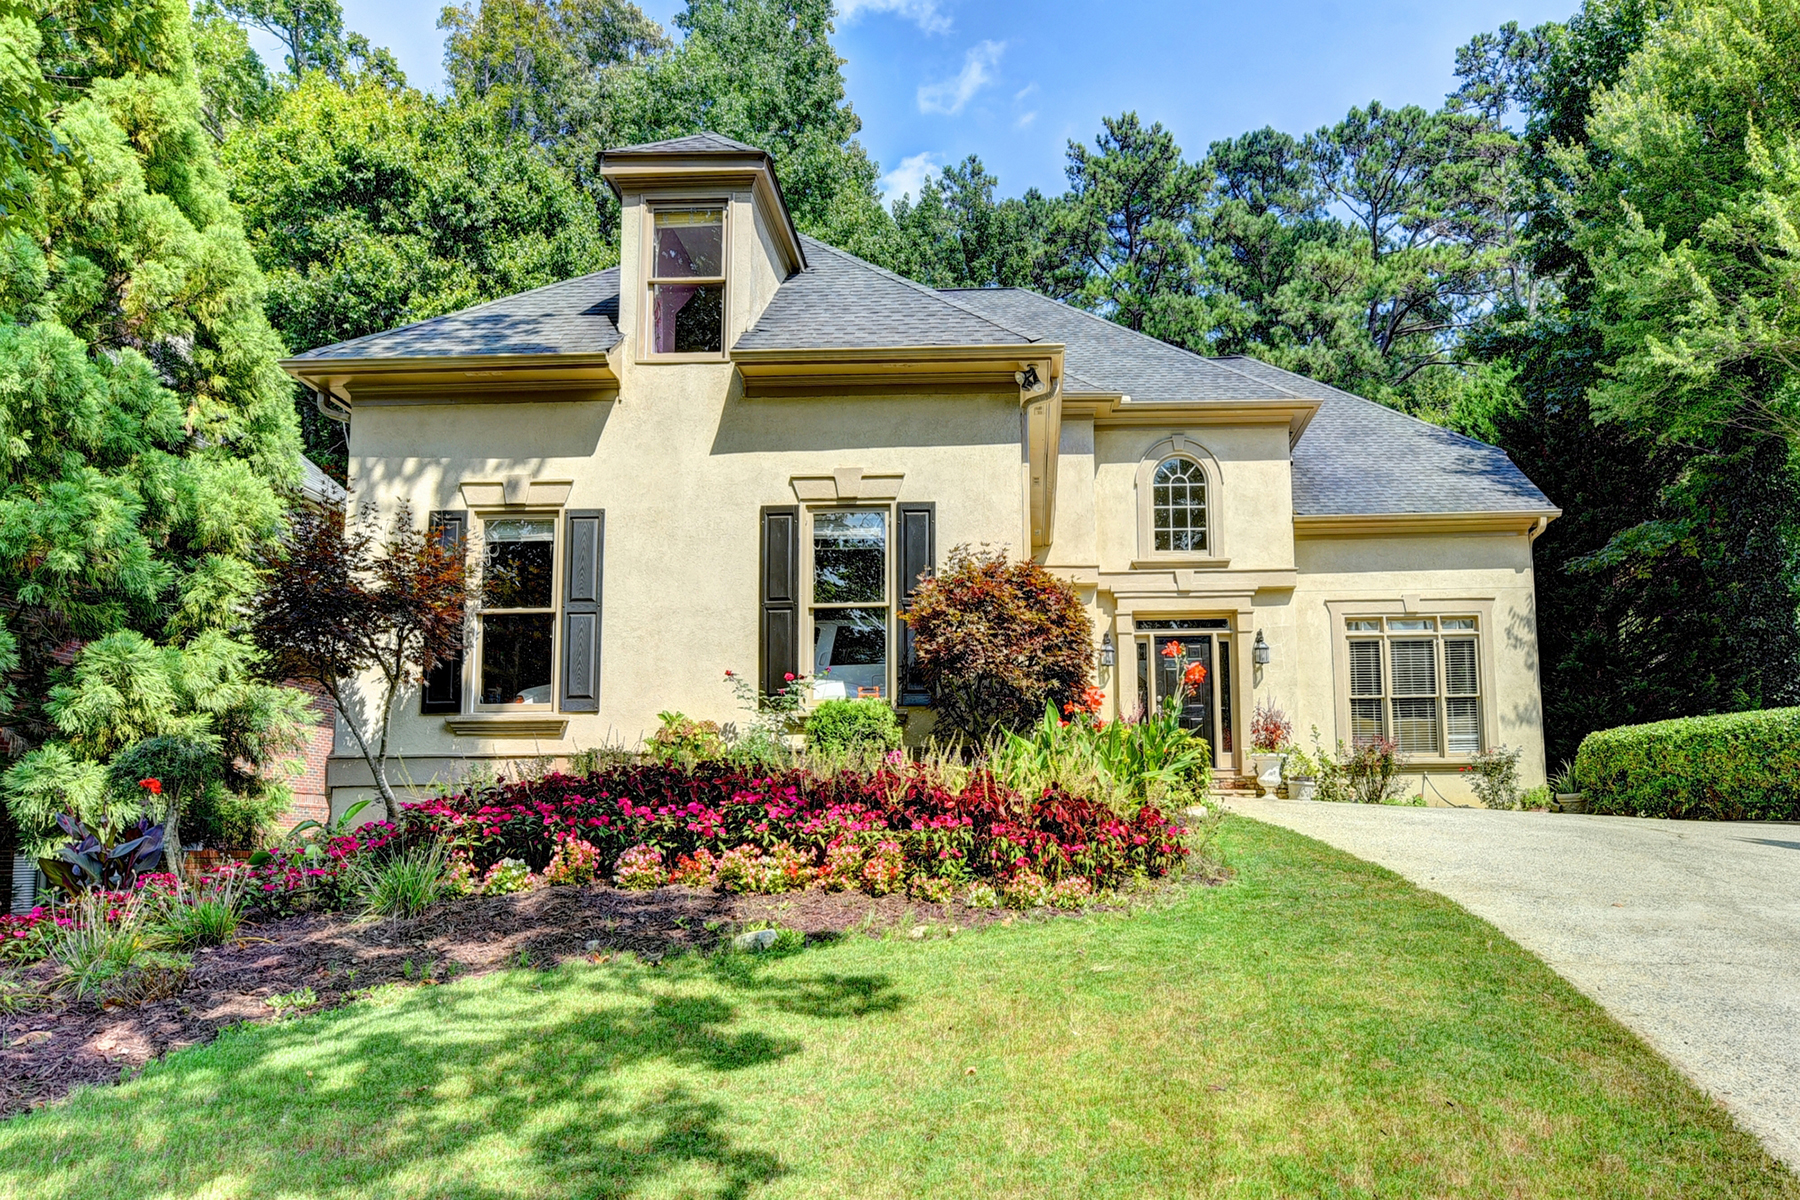 Single Family Home for Sale at Incredible Home On A Fabulous Private Double Lot 5405 Buck Hollow Drive Alpharetta, Georgia 30005 United States